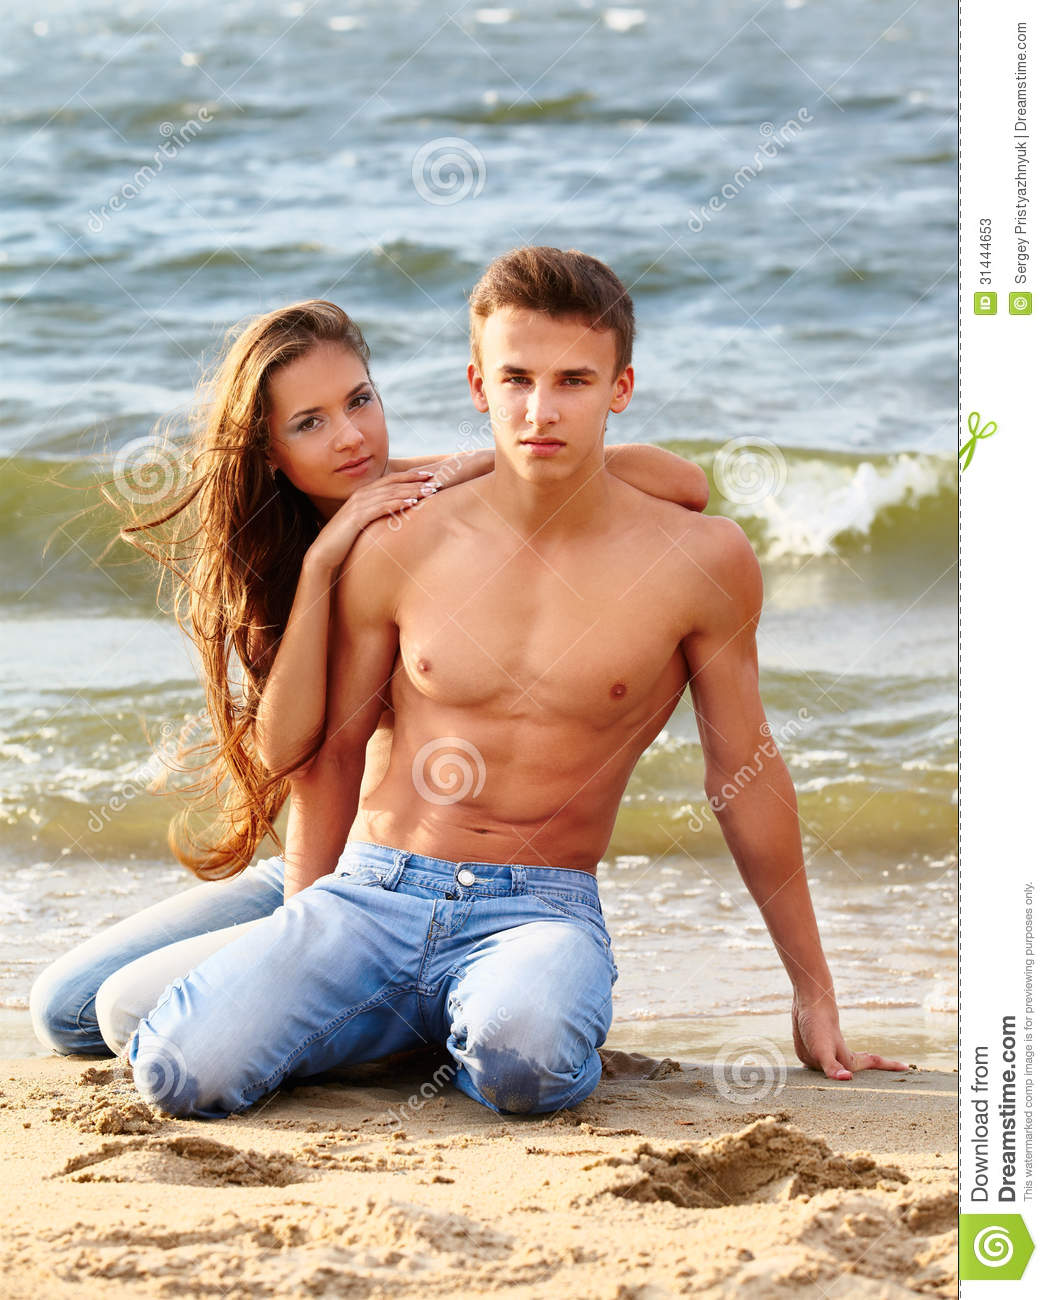 Couple At The Beach Stock Image Image Of Caucasian: Couple At The Beach Stock Photos